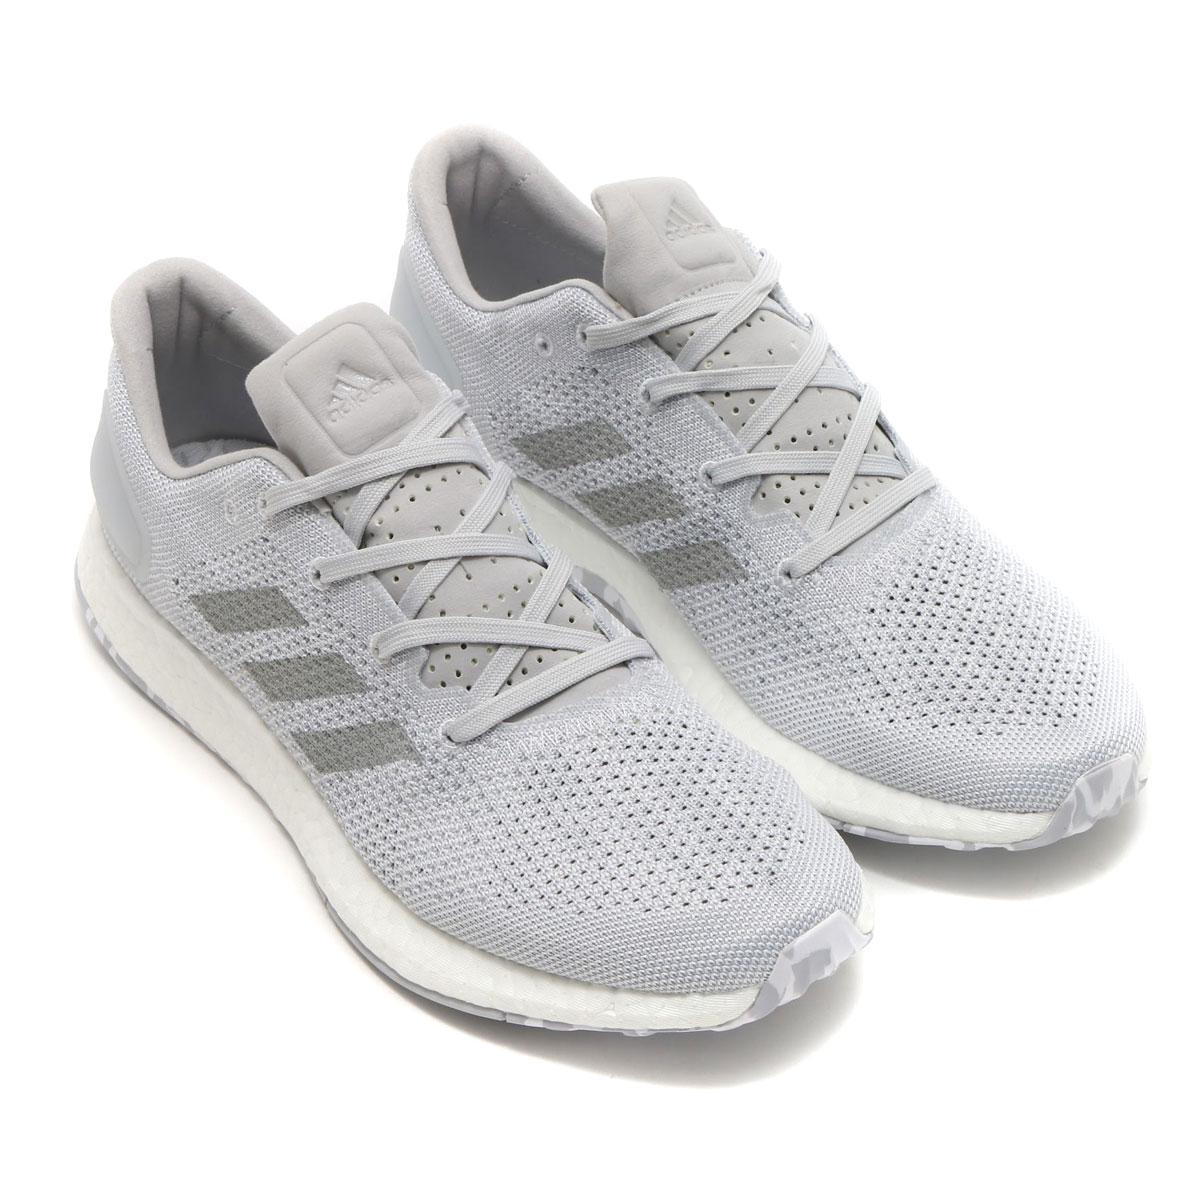 official photos b7666 f59a2 adidas Originals PureBOOST DPR LTD (Adidas pure boost DPR LTD) (Running  White/Mid Grey/Solid Grey) 17FW-I